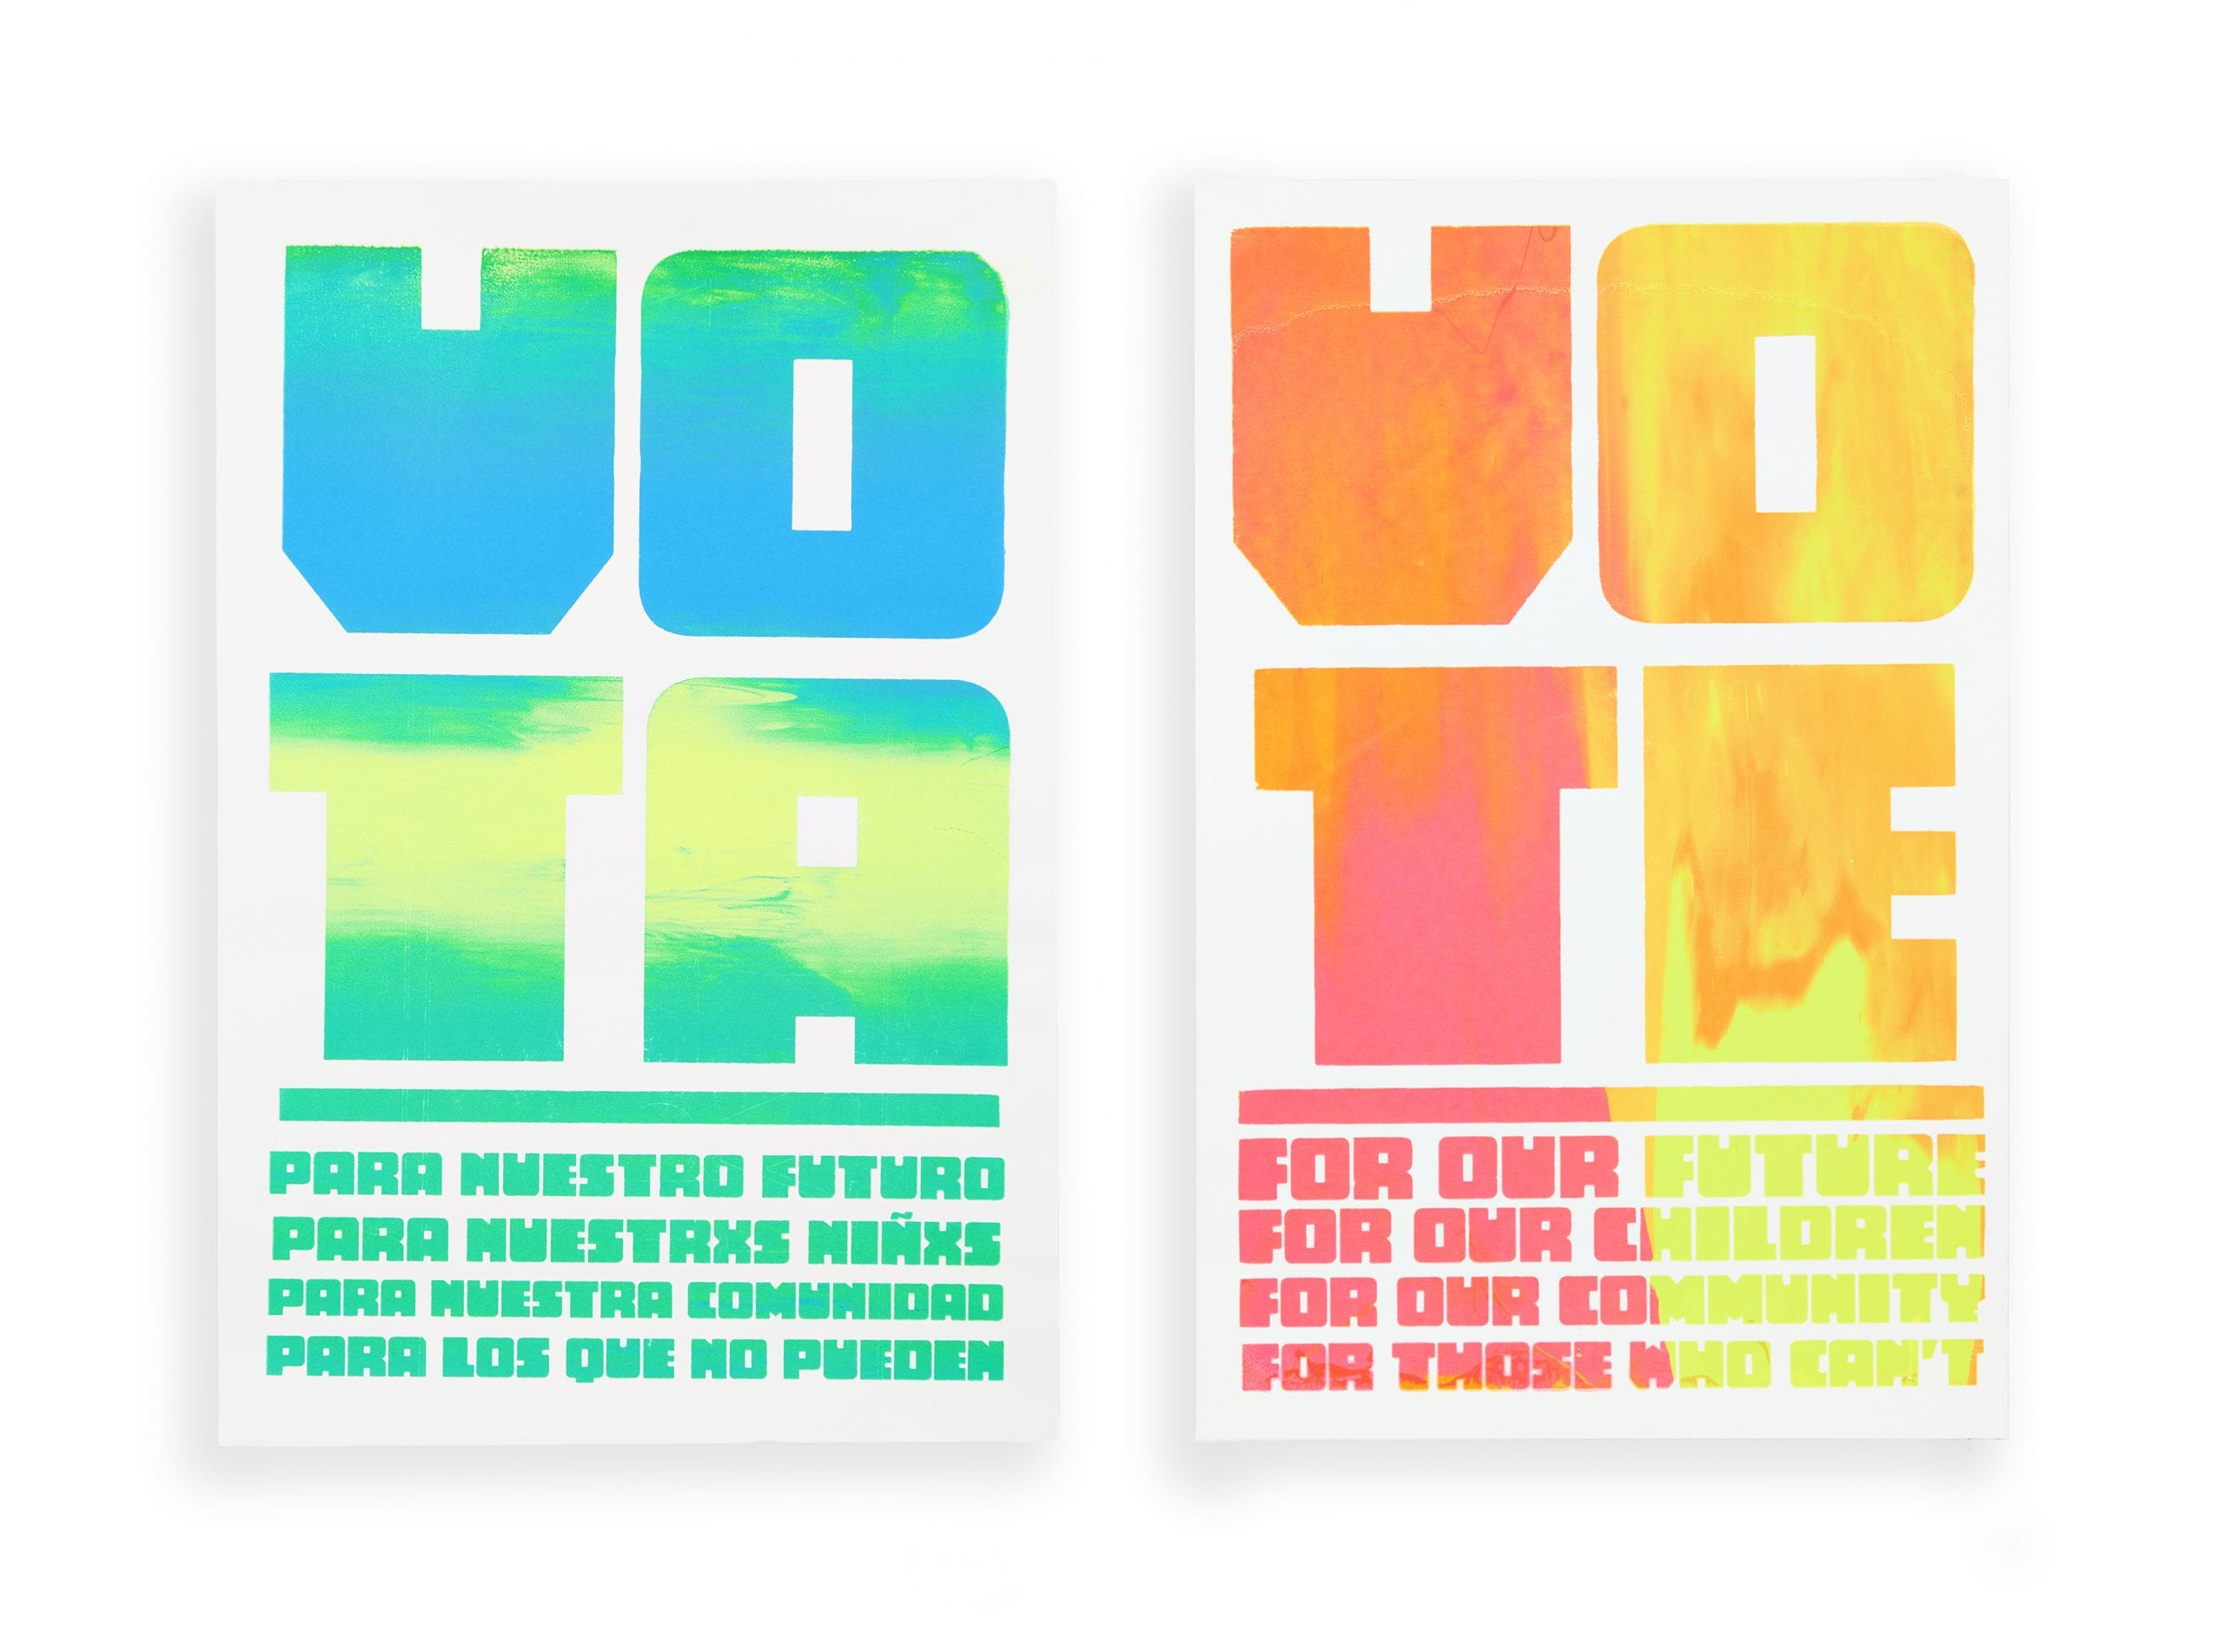 """Two silkscreen posters with neon-colored text on white background that say """"Vote for Our Futures, for Our Communities, for Our Children, for Those Who Can't"""" in both English and Spanish"""